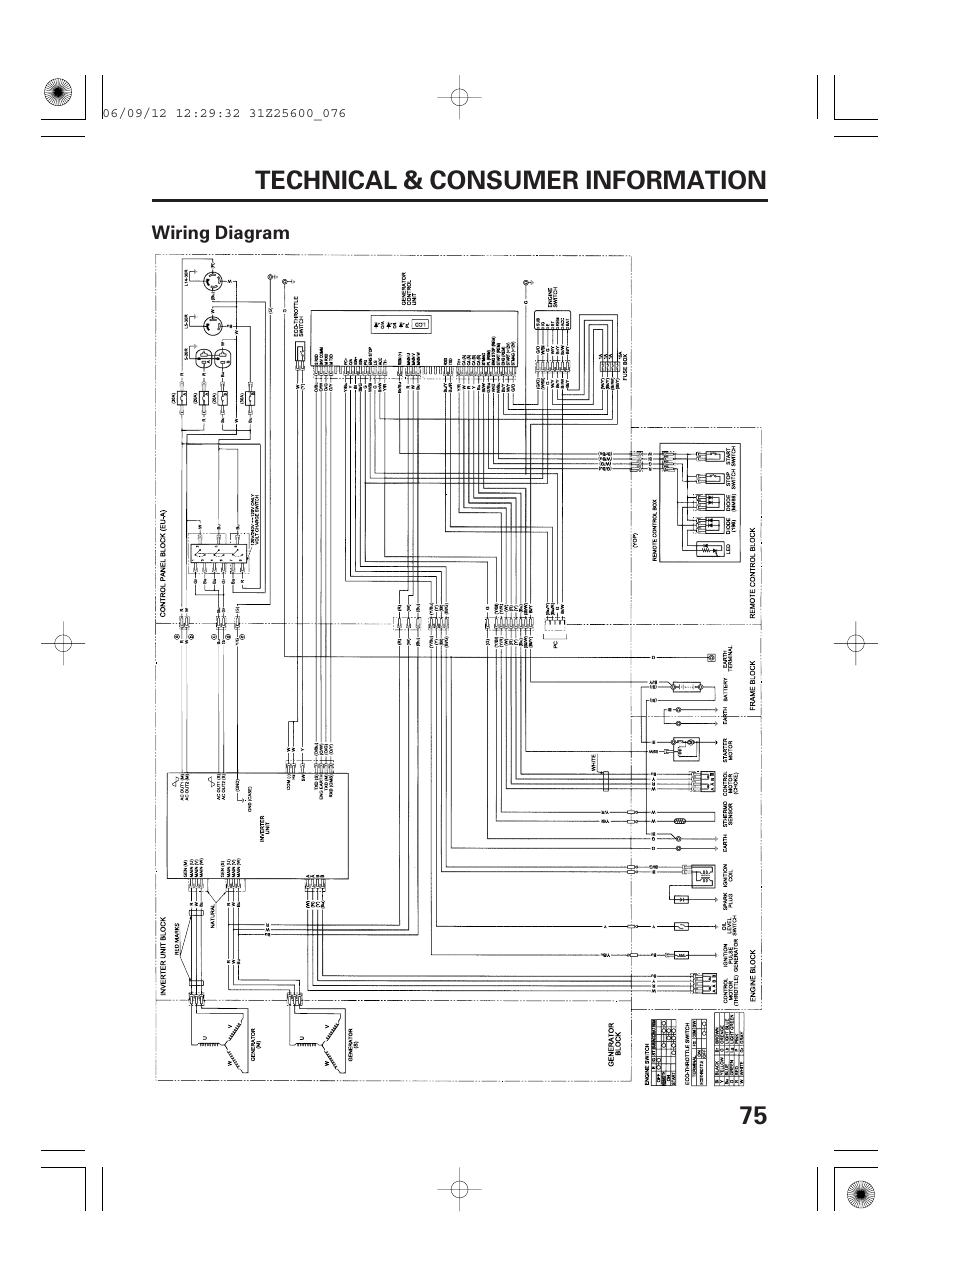 Furnas esp100 overload relay wiring diagram wiring wiring diagrams furnas esp100 wiring diagram furnas esp100 overload relay wiring diagram at ww38eeautoresponder cheapraybanclubmaster Image collections